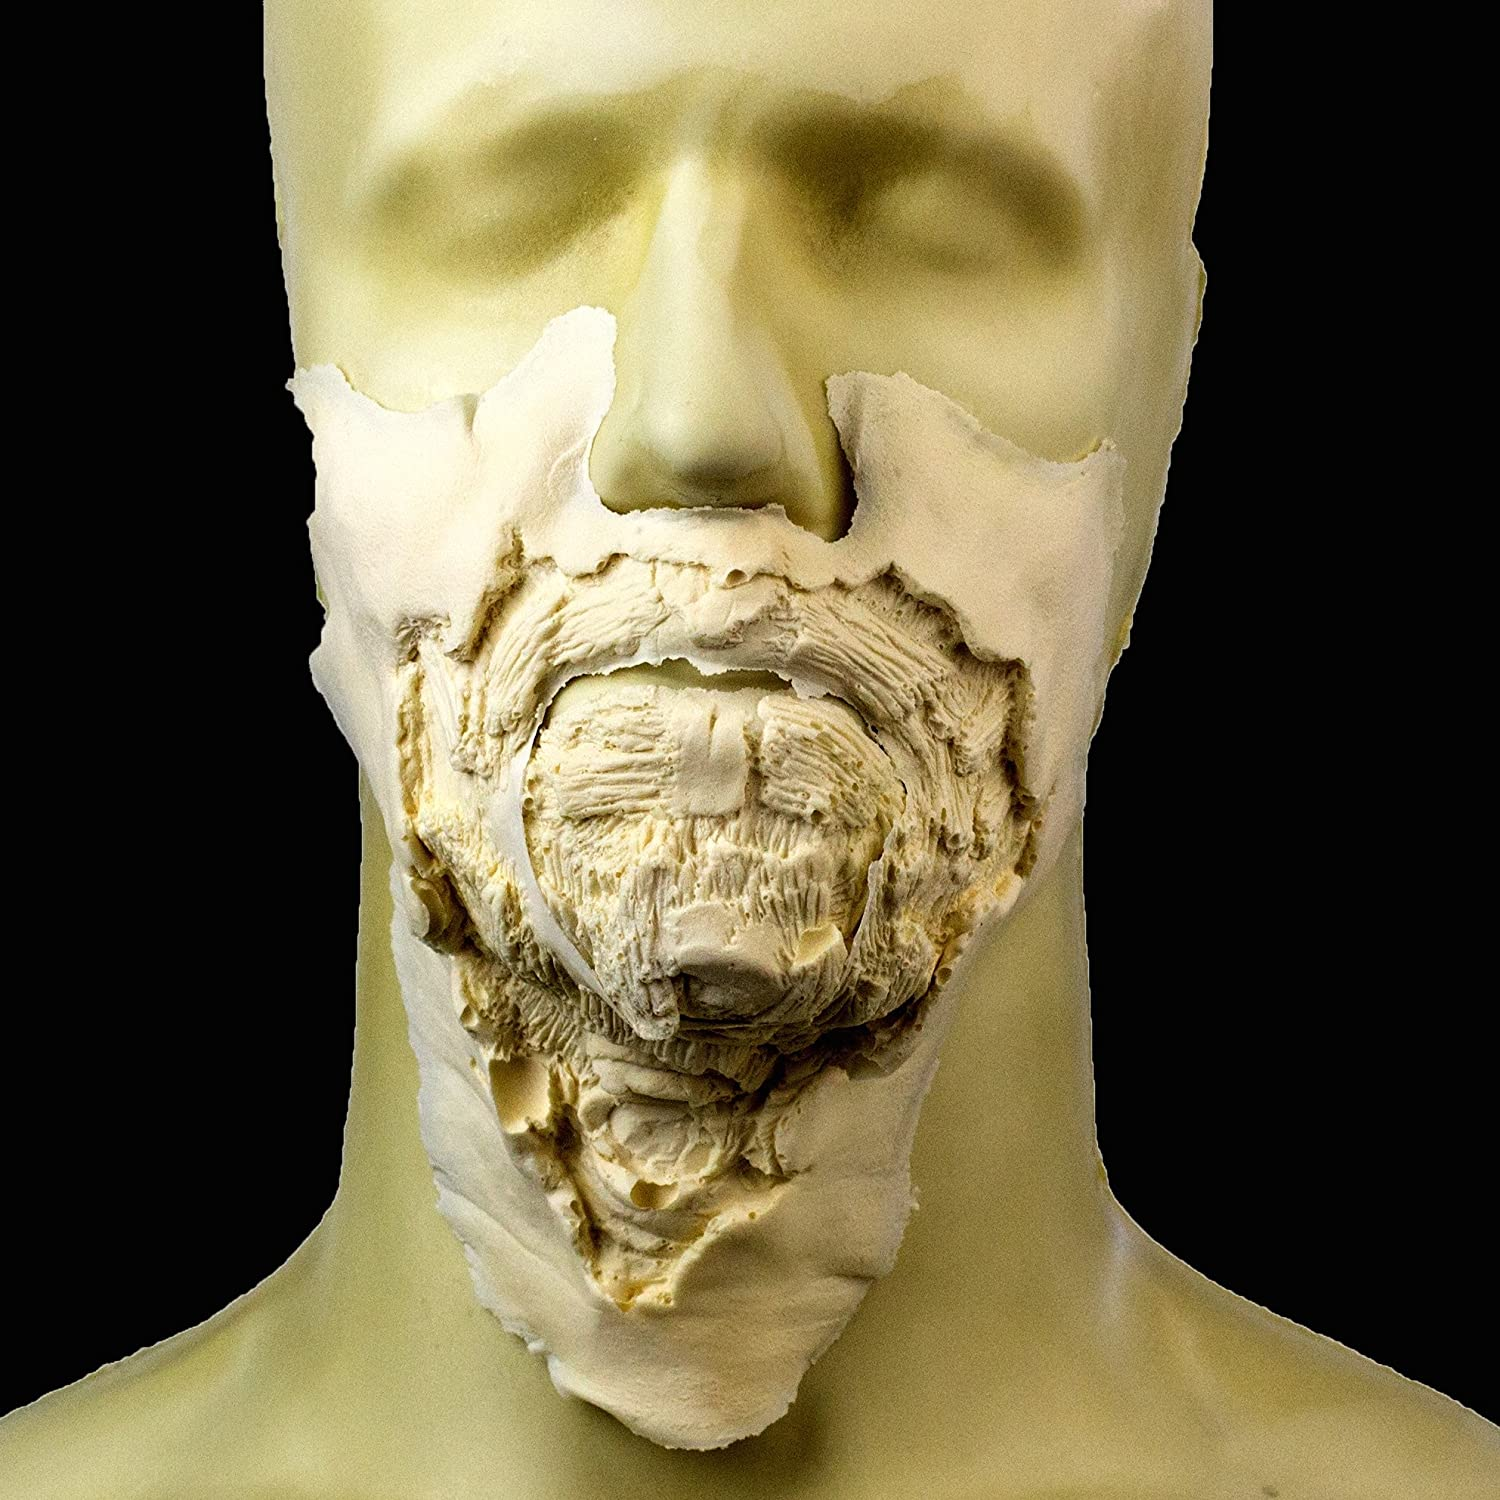 Rubber Wear Foam Latex Prosthetic Makeup FX Large Zombie Mouth #1 FRW-115